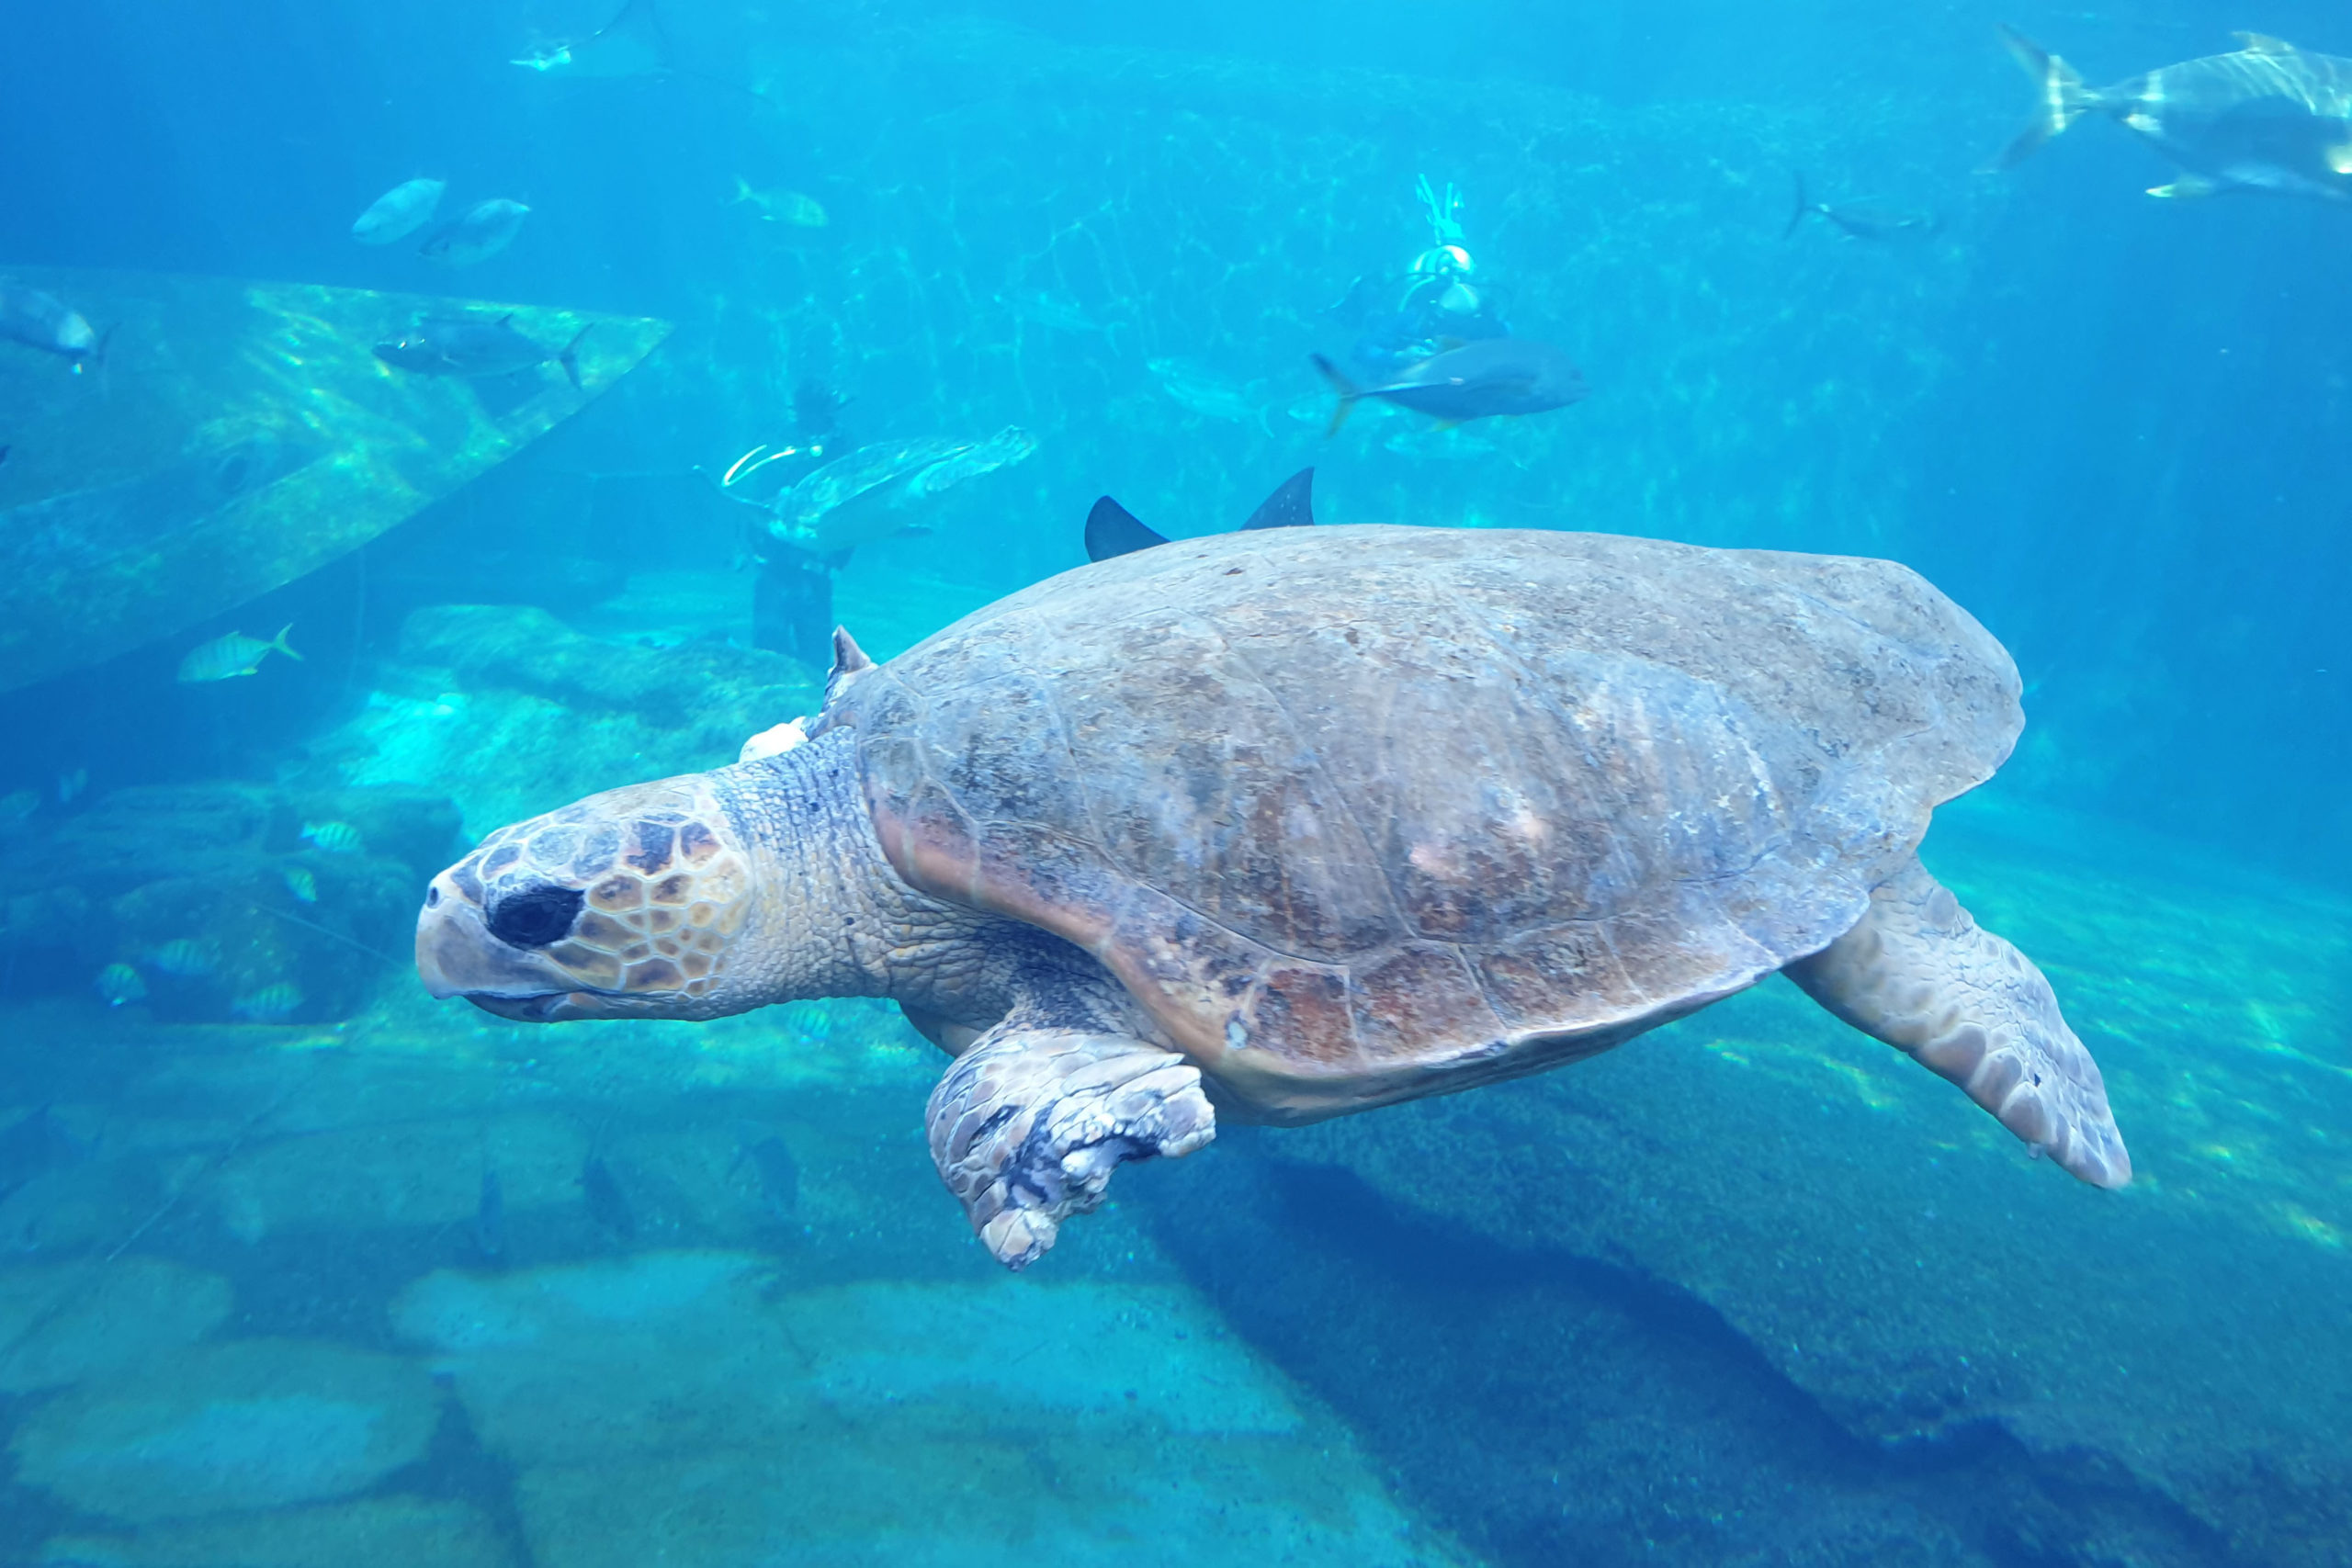 Keena, the rescued loggerhead turtle exercising in the main Open Ocean exhibit at uShaka Sea World.